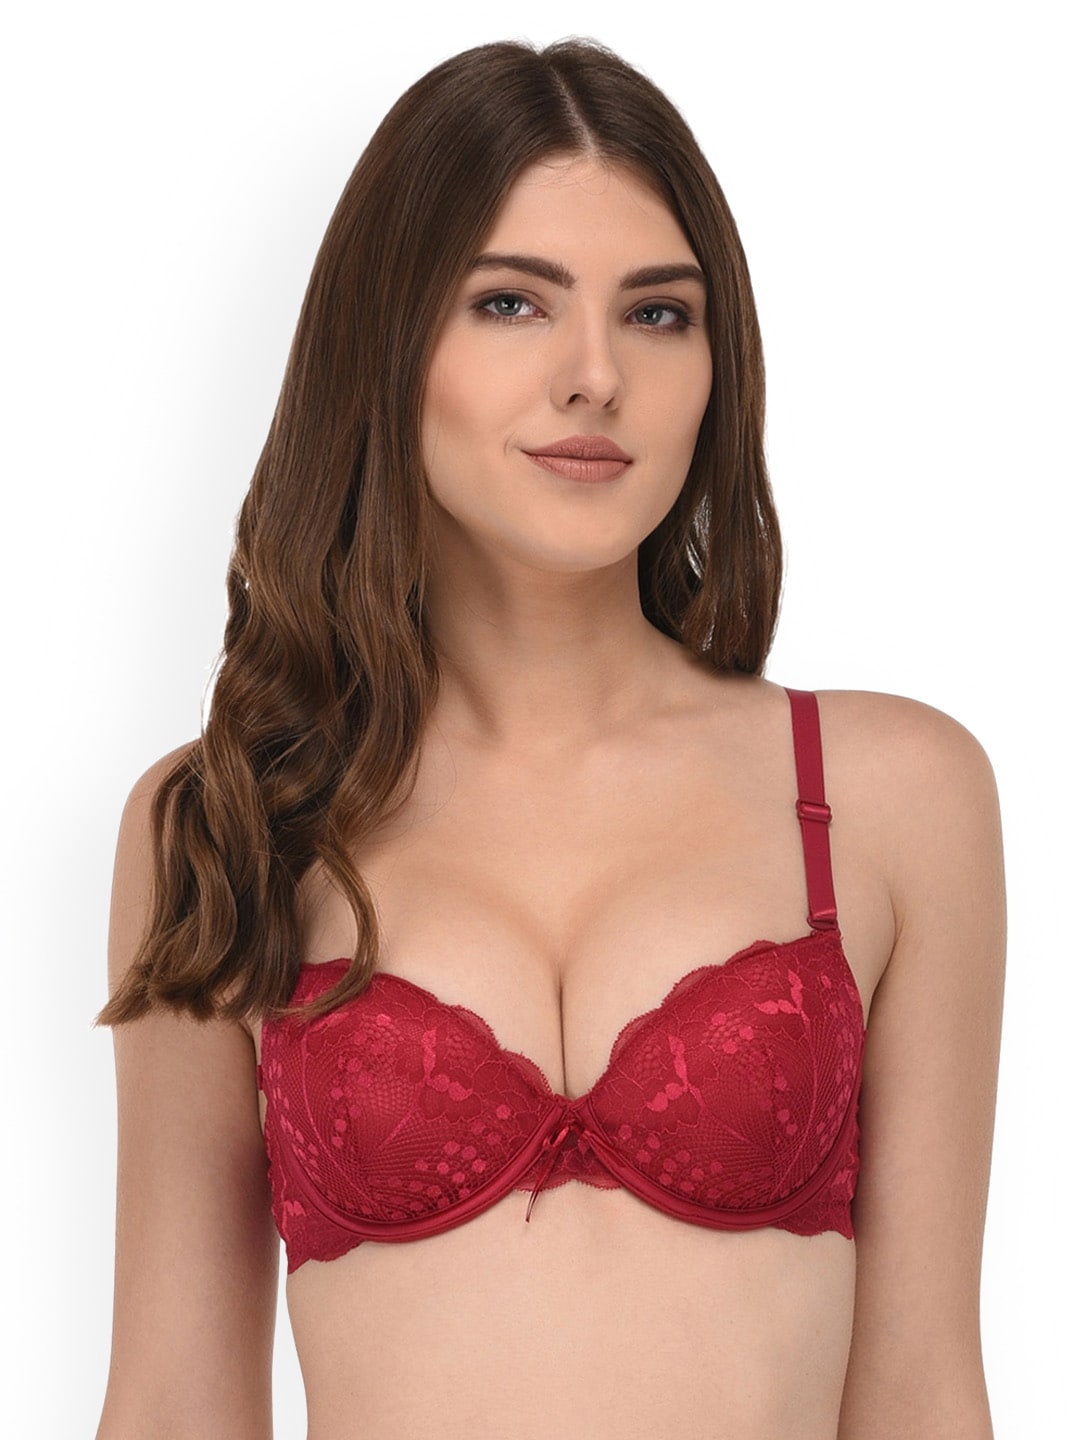 5e4b57f8d8 Quttos Red Lace Underwired Heavily Padded Push-Up Bra QT BR 8001 LC RED 36B